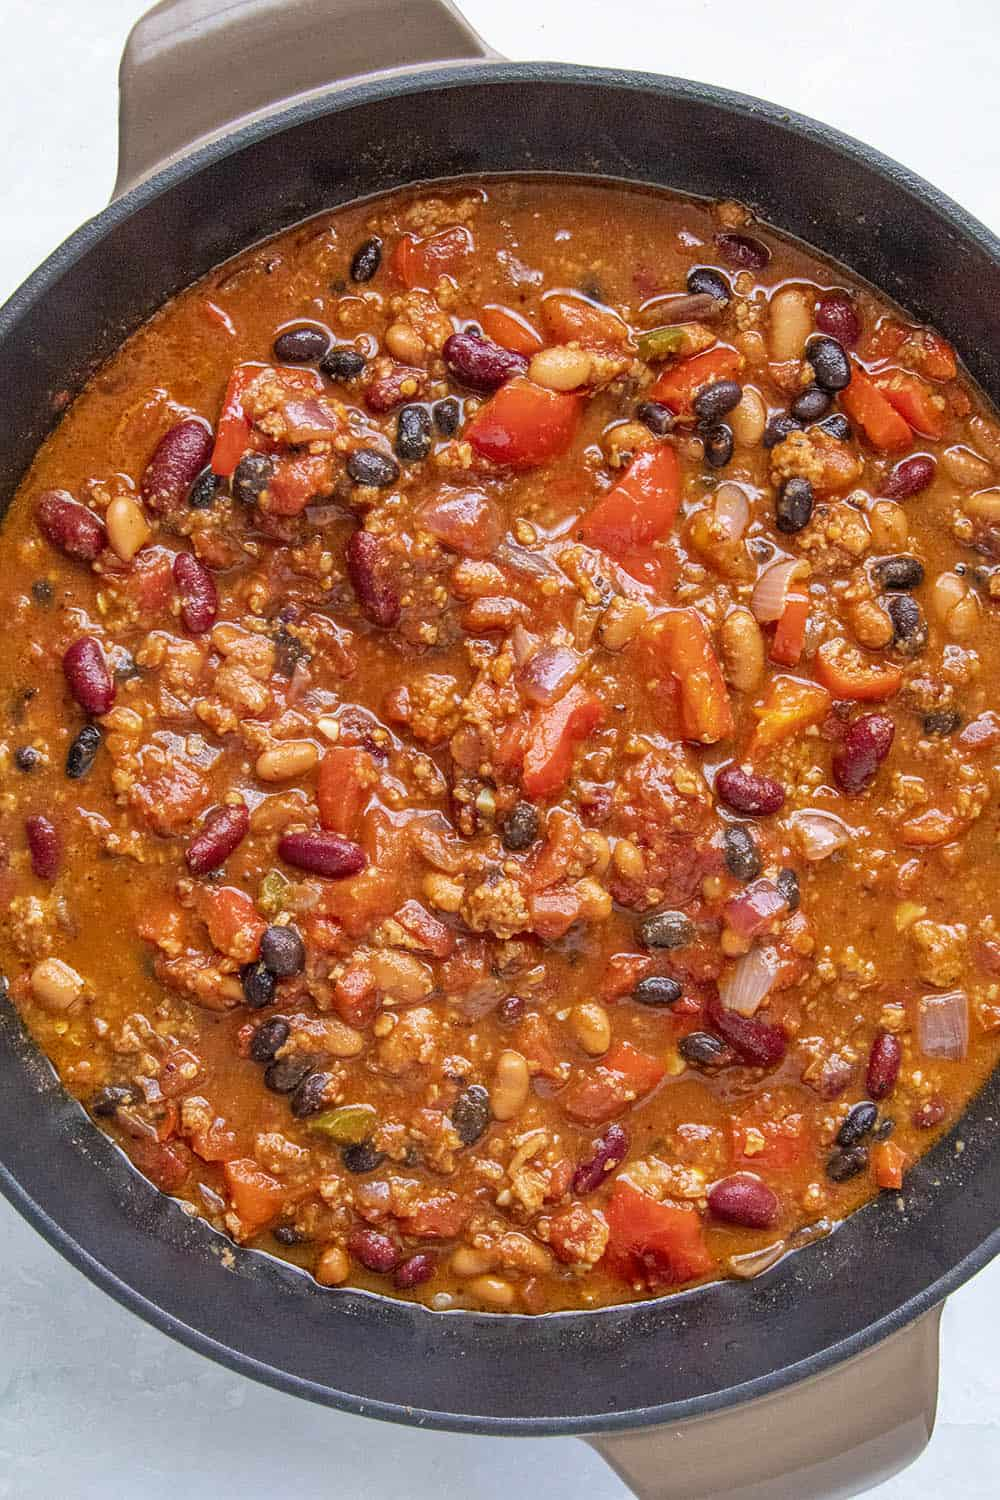 Chunky Vegetarian Chili simmering in the pot